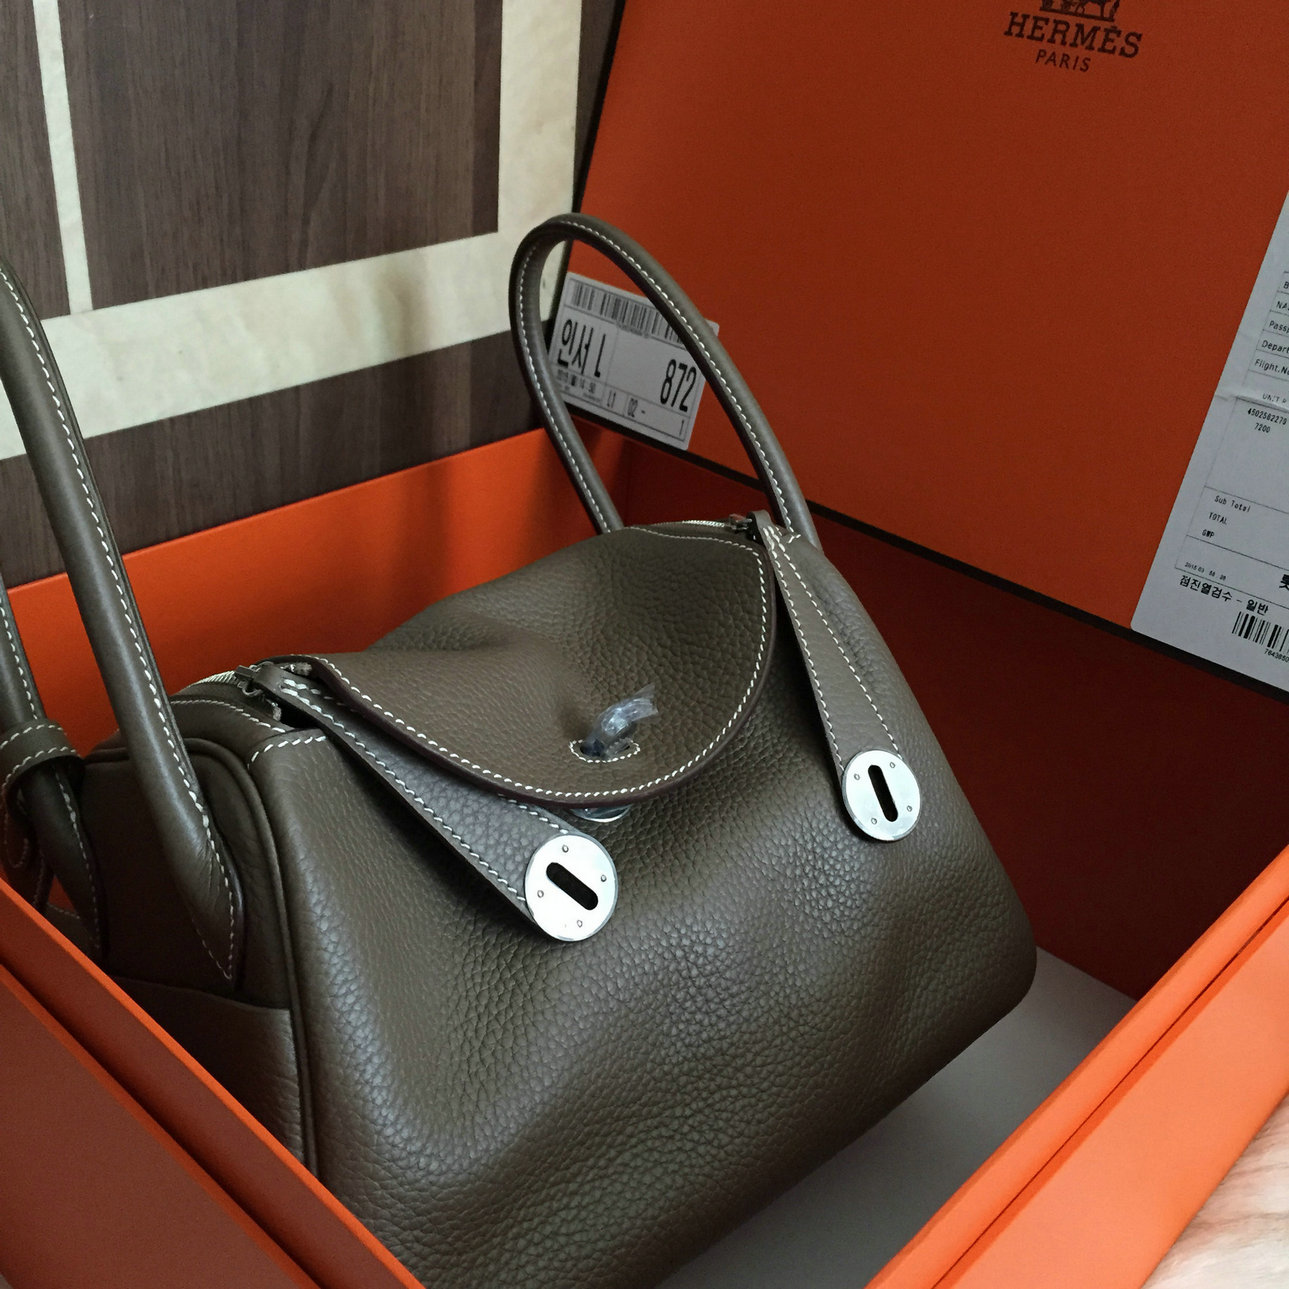 ... usa pre shipment photos hermes lindy 26cm full hand stitching in togo  leather best original quality 1f9b5f330c